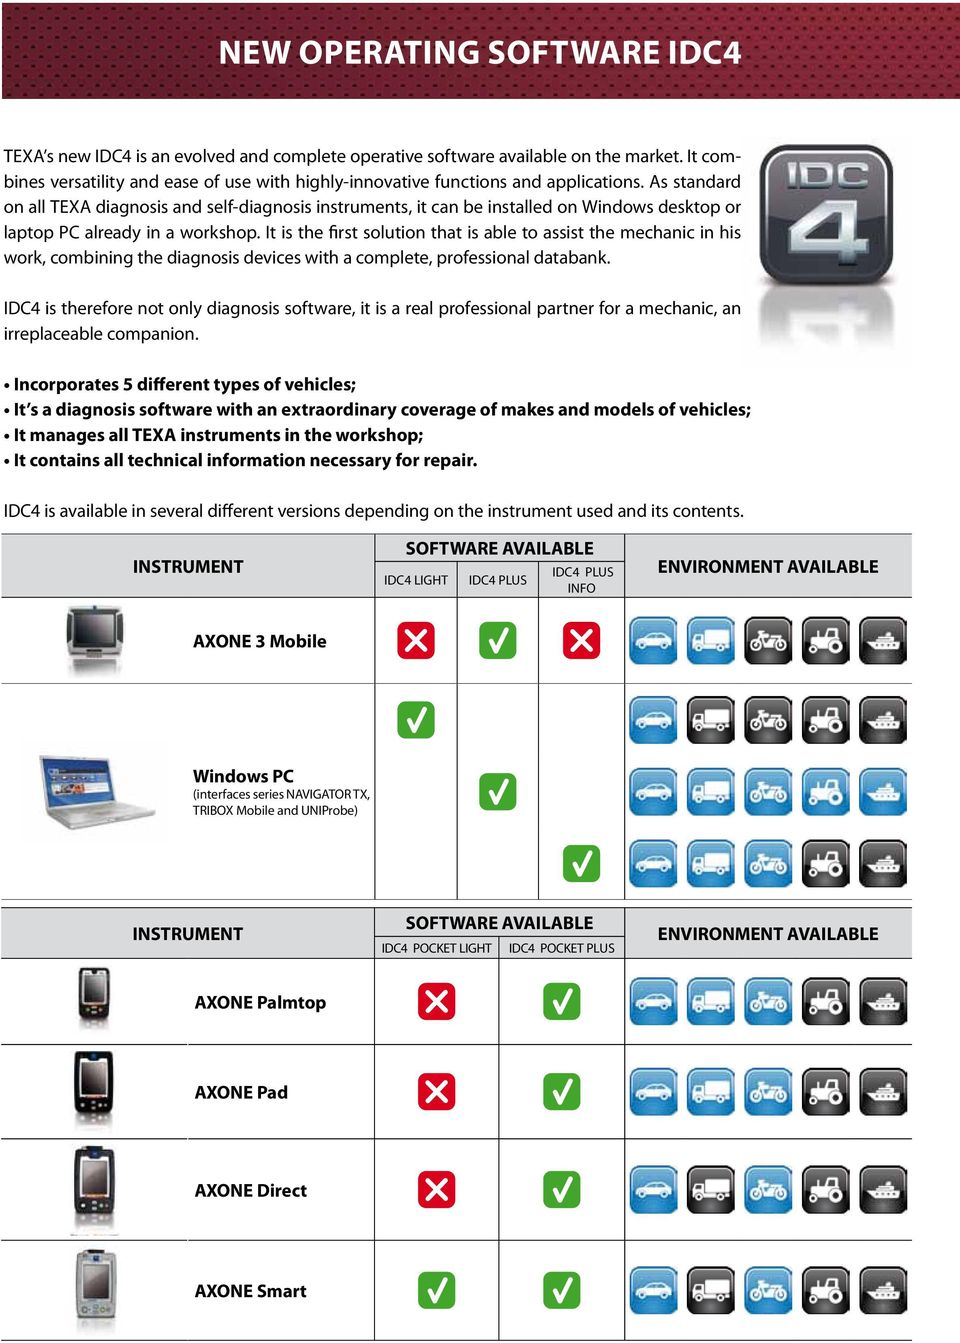 IDC4 SOFTWARE  (available for FREE to customers under